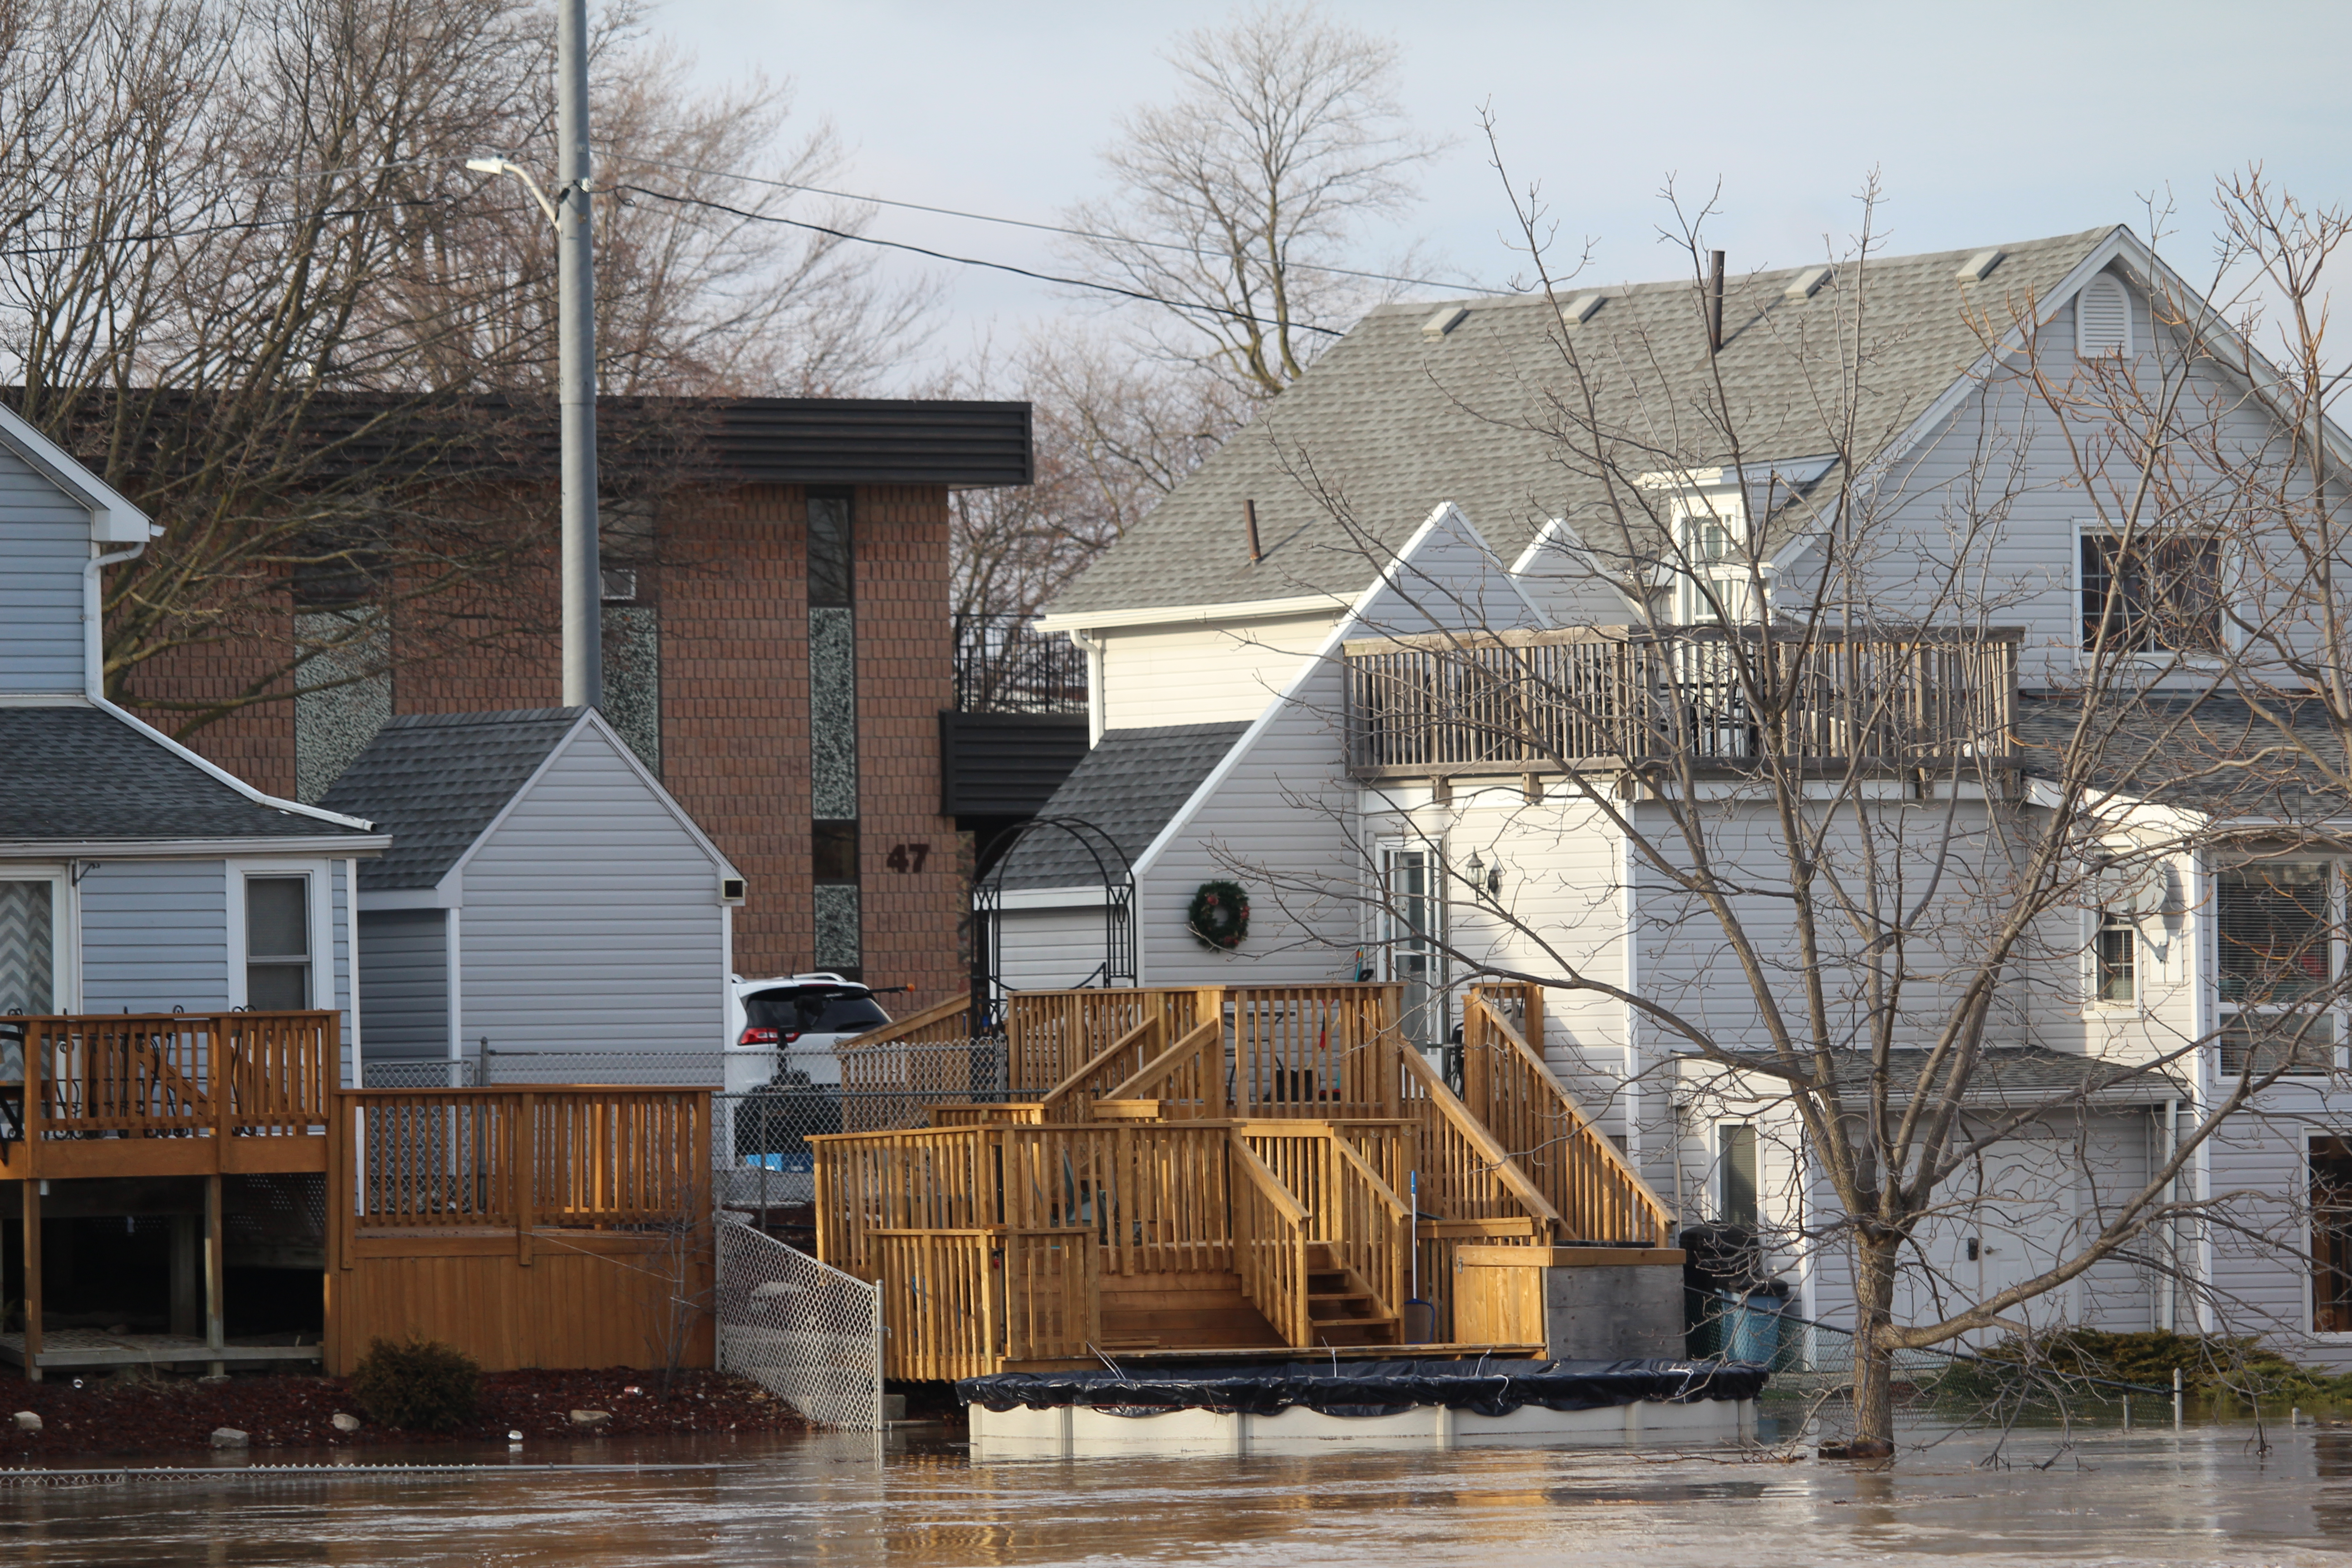 The Thames River floods several residents' backyards across from the Chatham-Kent Civic Centre. February 24, 2018. (Photo by Matt Weverink)